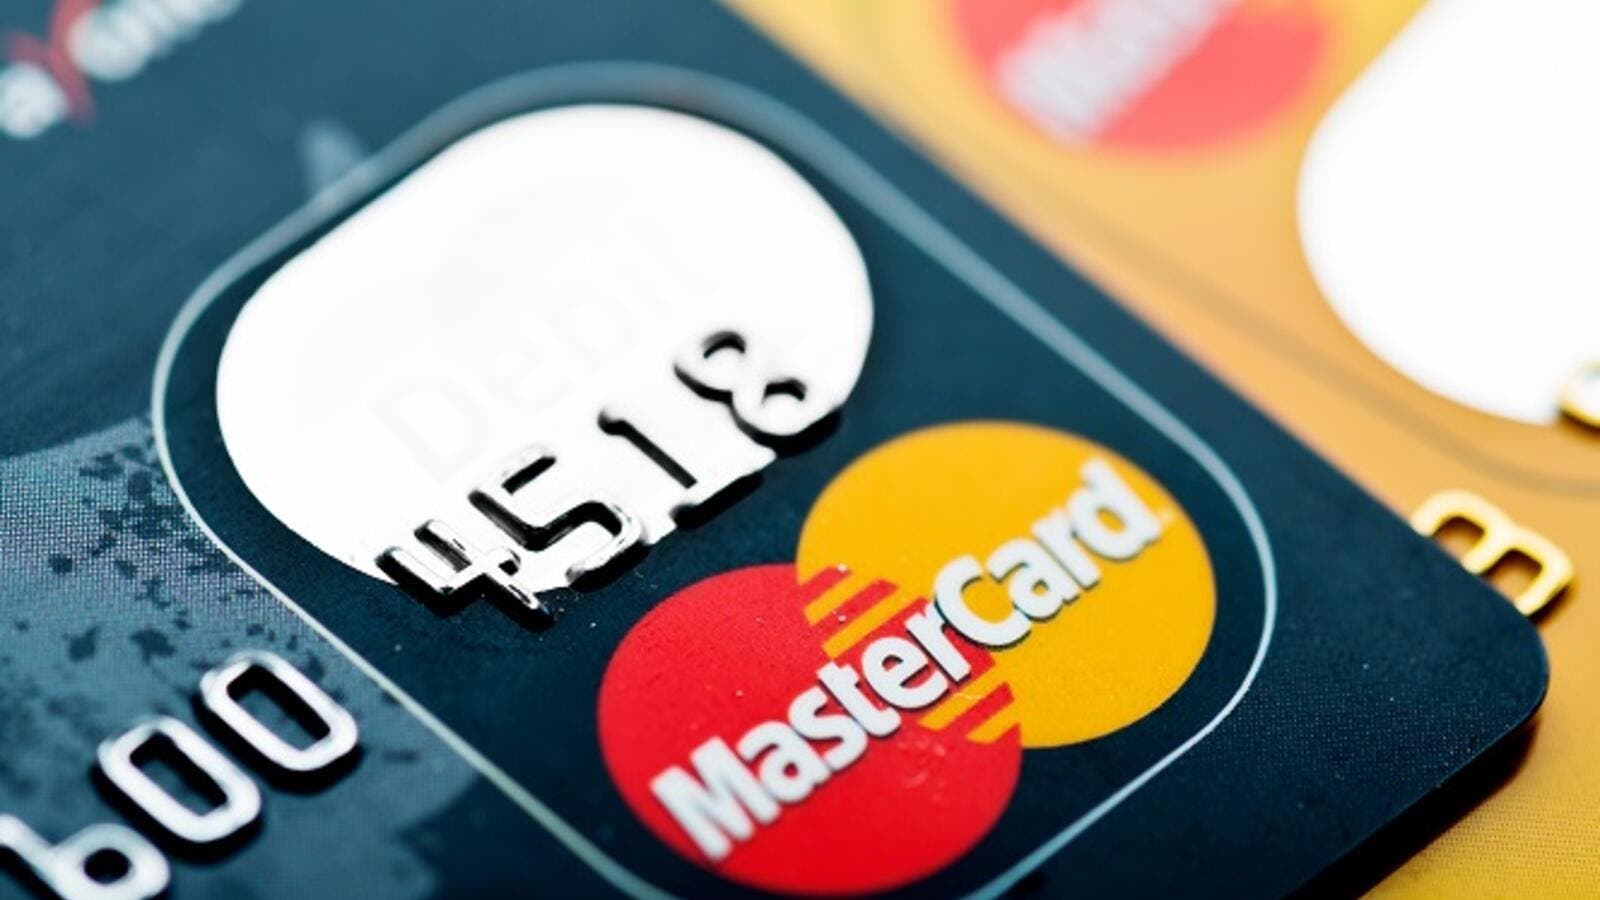 No Car Loan or Credit Card in UAE If You Fail to Pay Your